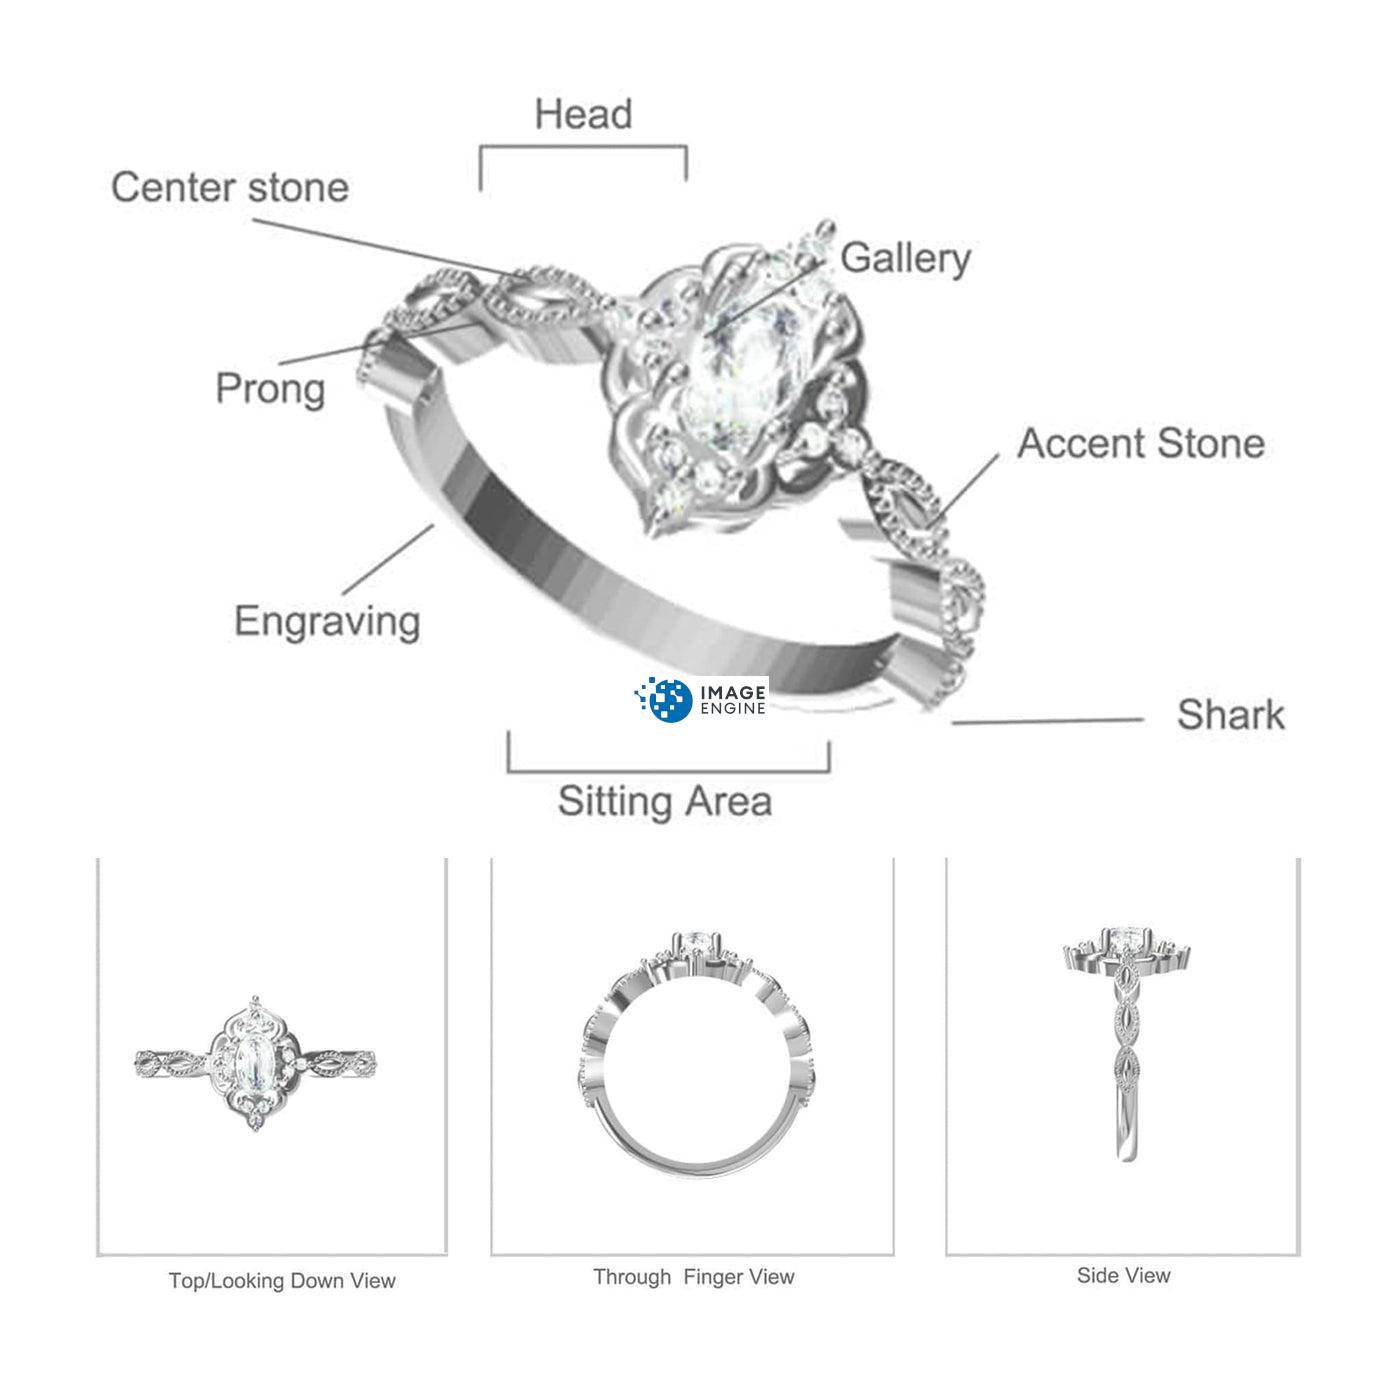 Blue Opal Carved Ring - Parts - Diagram